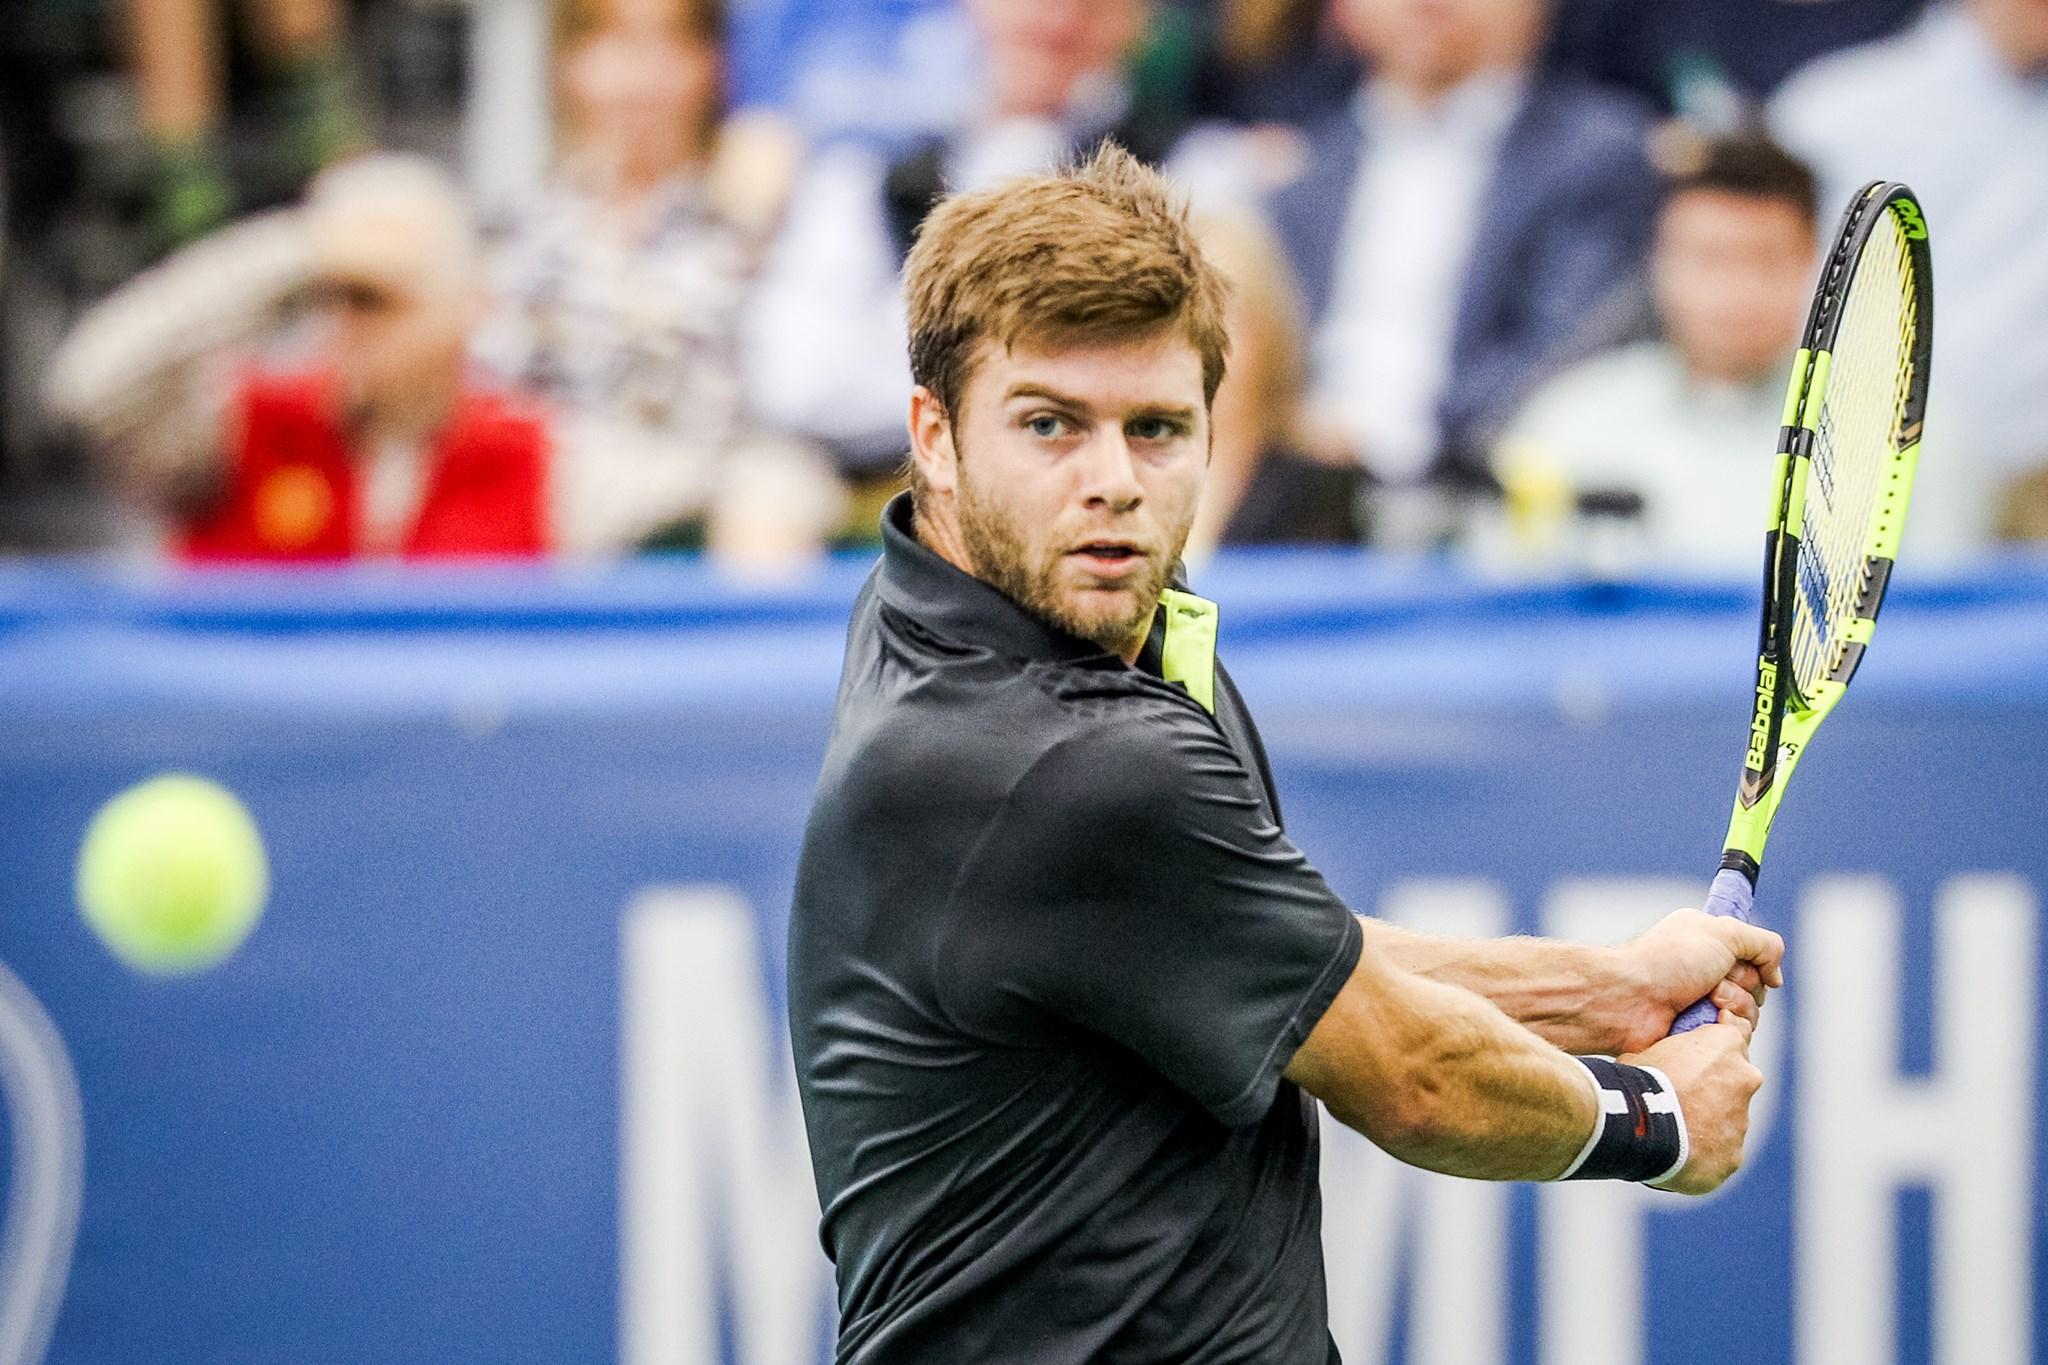 Ryan Harrison Clears Name, but Bad Blood with Donald Young Still Remains